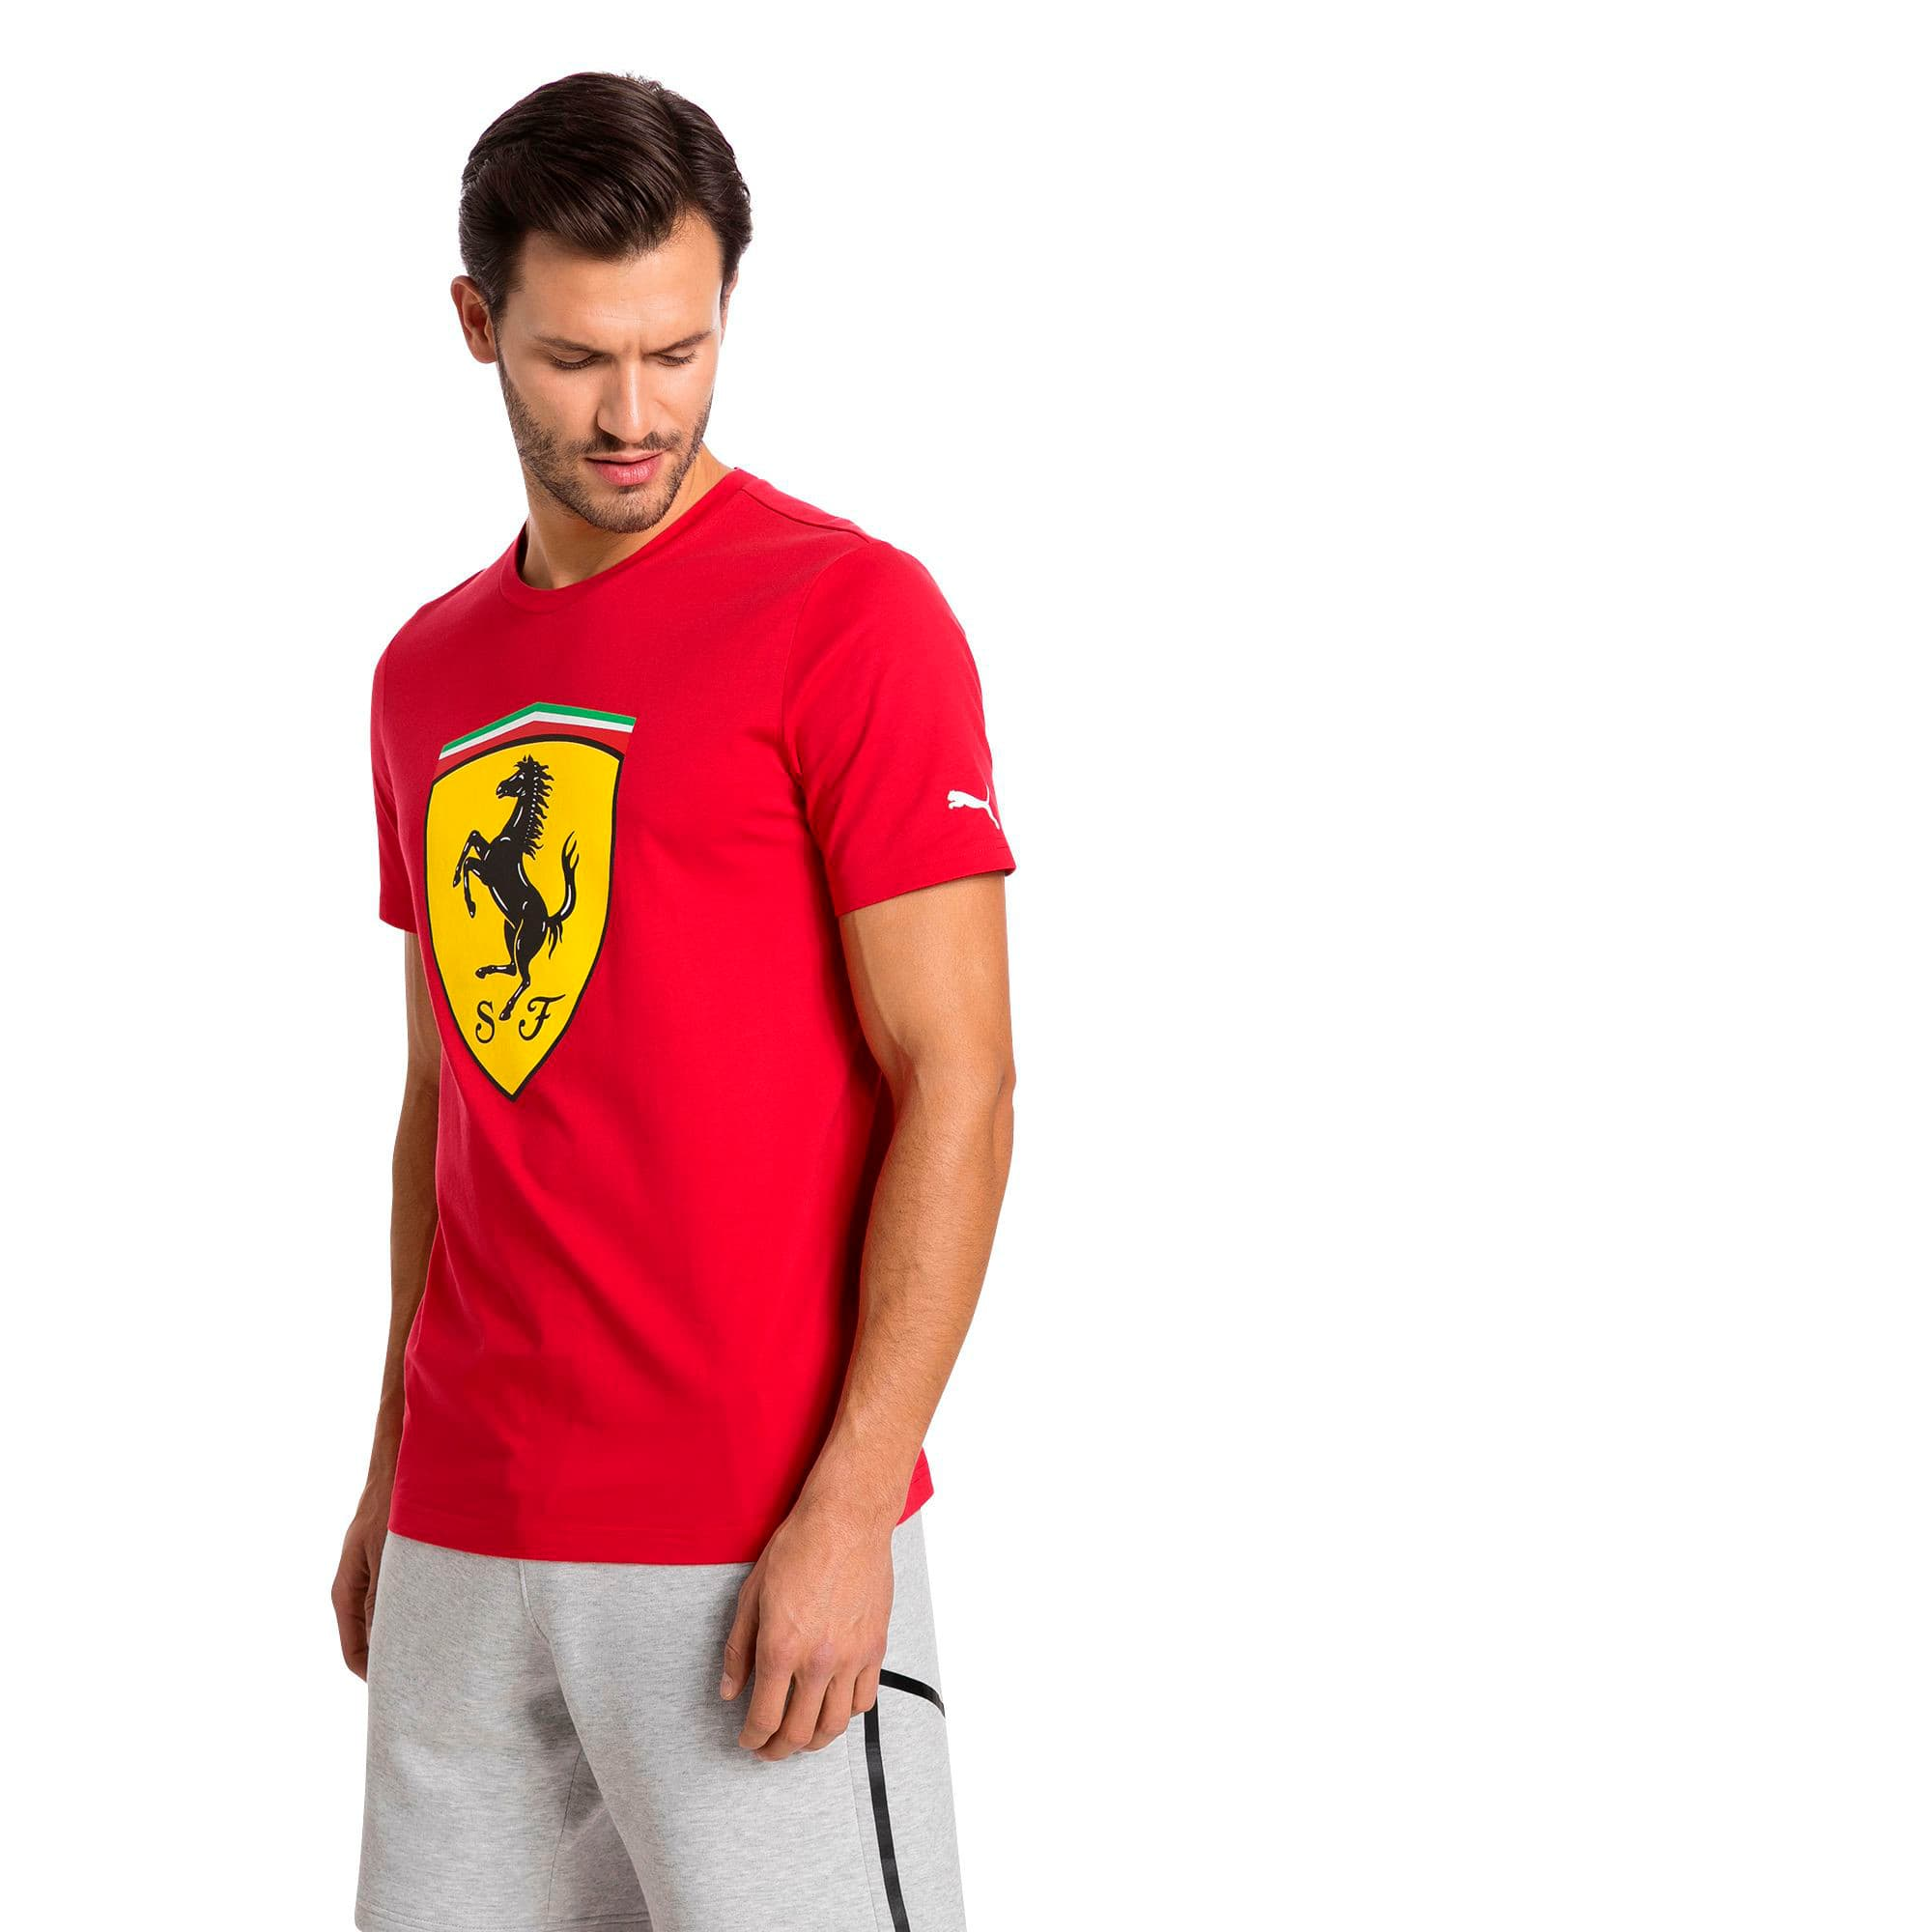 PUMA Mens Scuderia Ferrari Big Shield T-Shirt 762139-01-XS-A